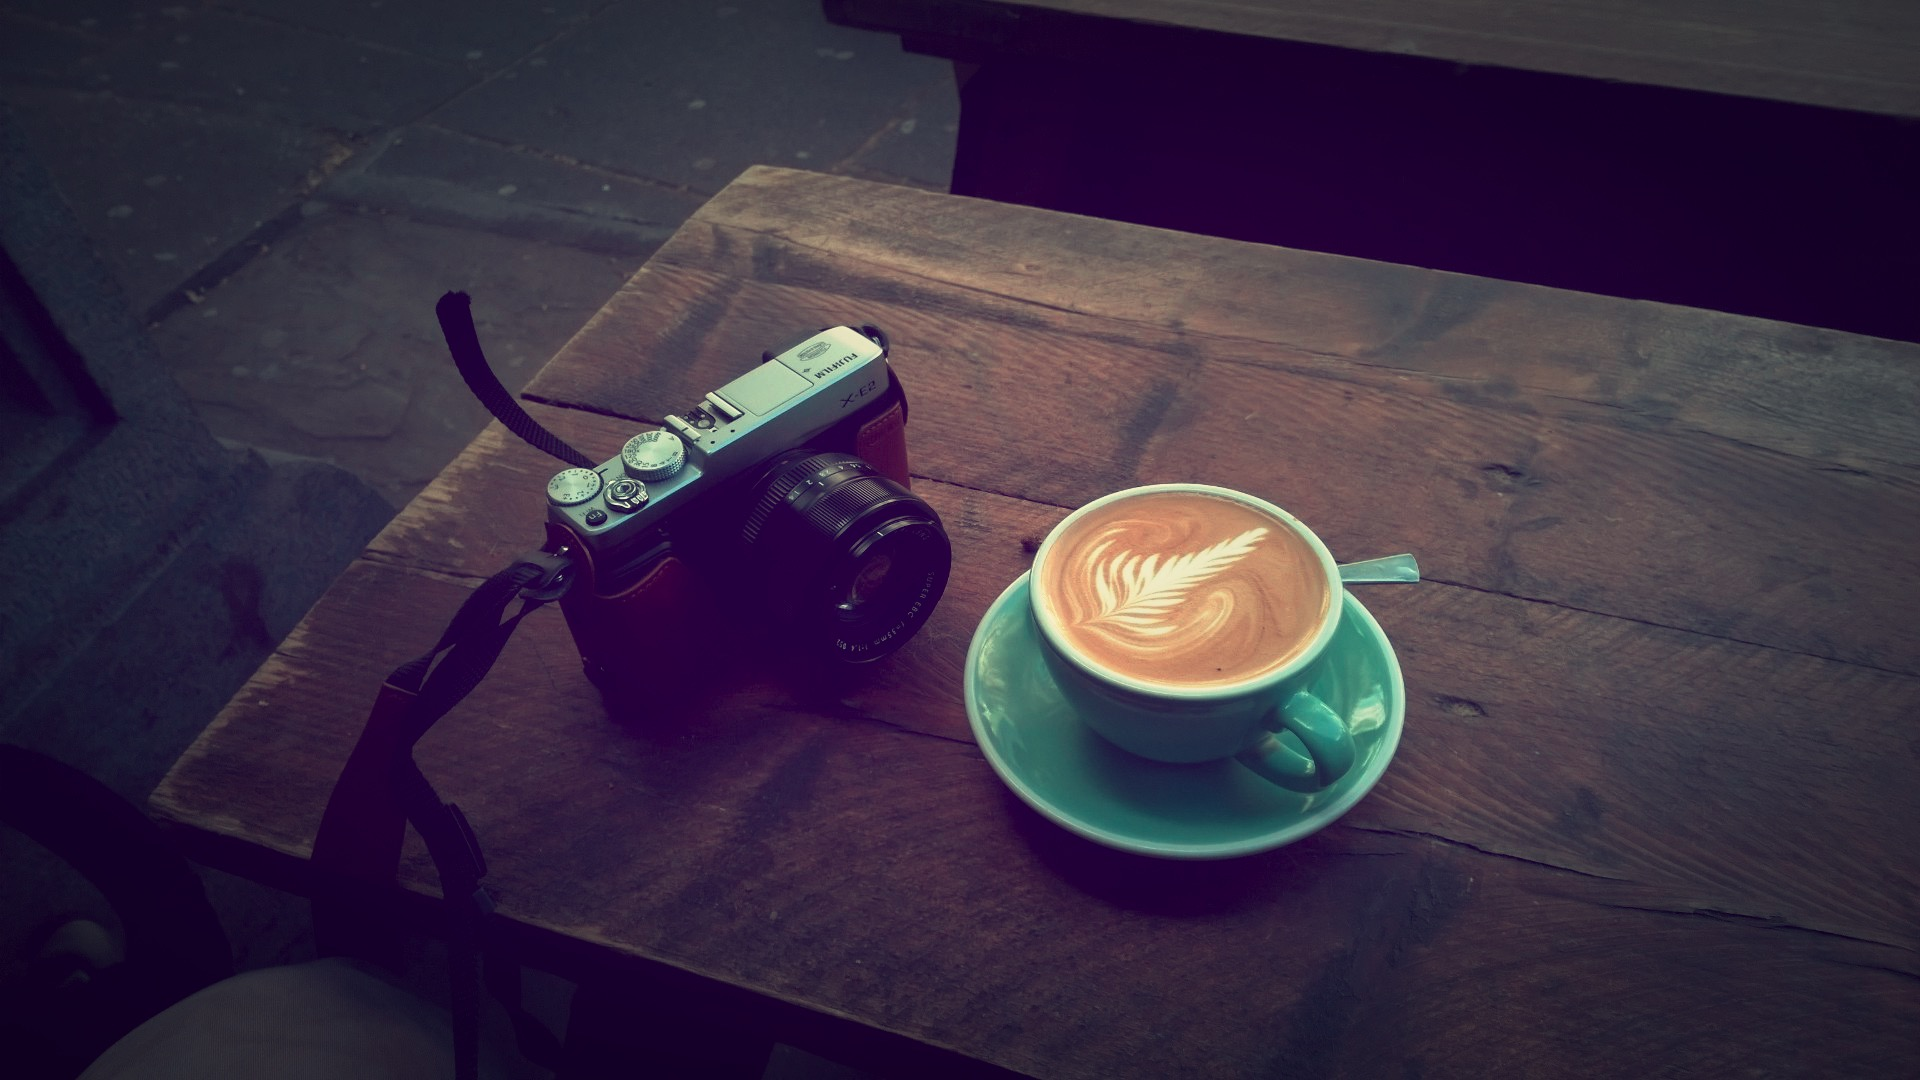 The Fujifilm X-E2 and a nice Flat White at FreeState